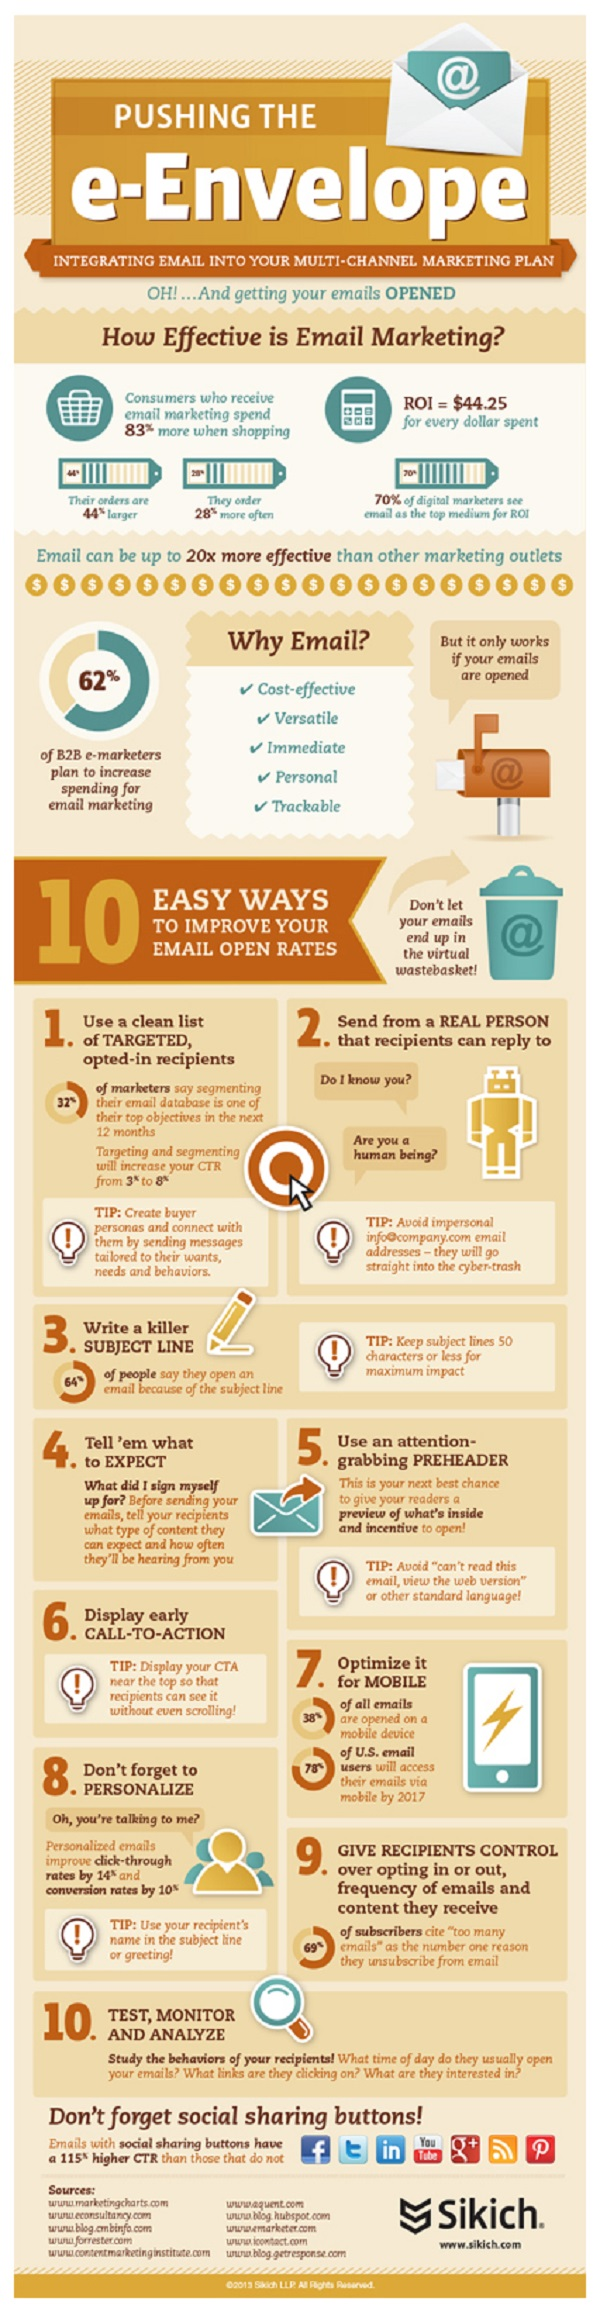 Sikich: 10 Easy Ways to Improve Email Open Rates